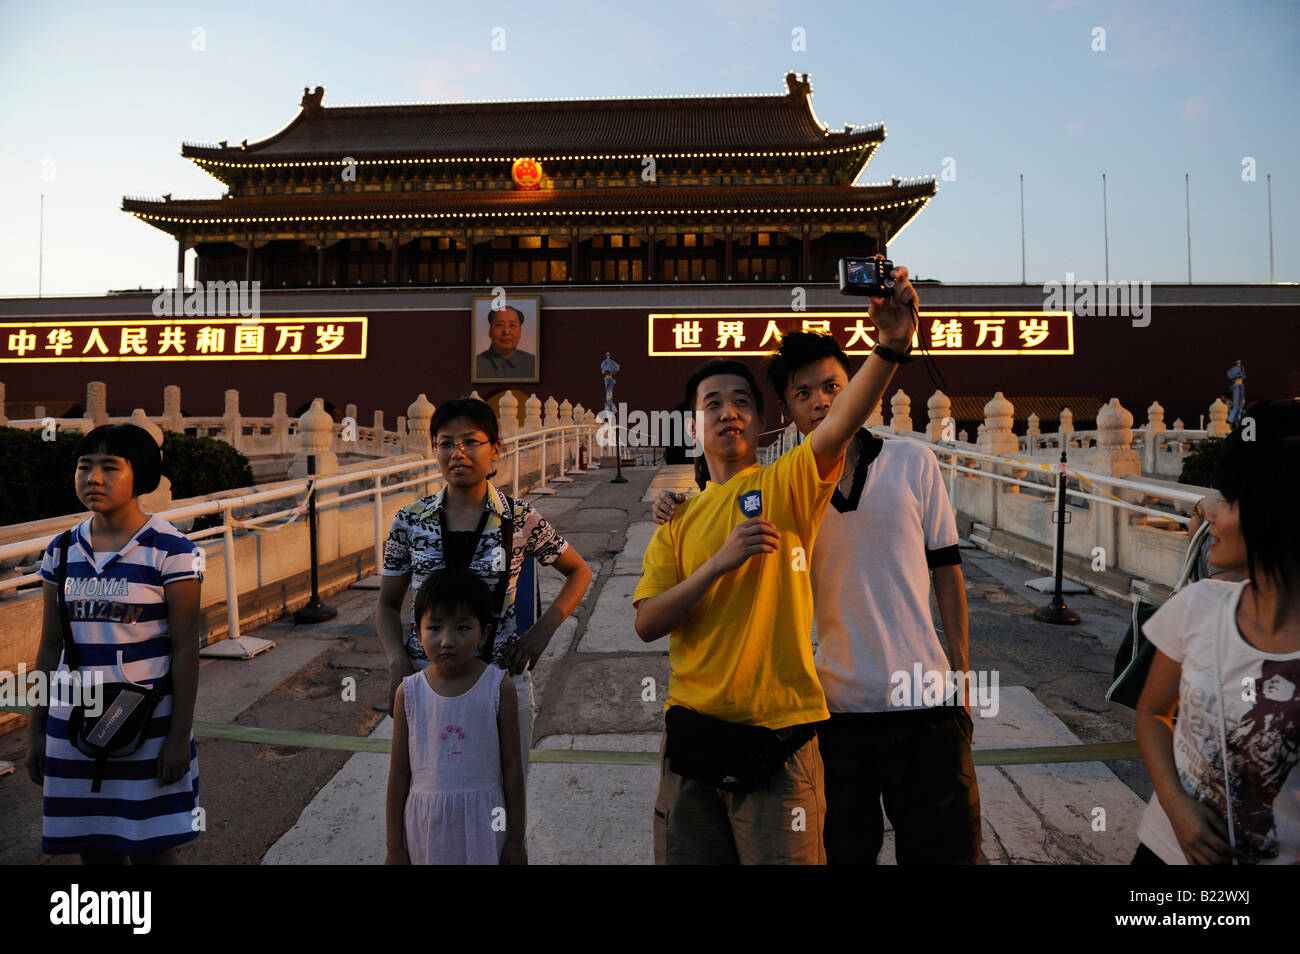 Chinese tourists take photos in front of Tiananmen Gate in Beijing China 12 Jul 2008 - Stock Image